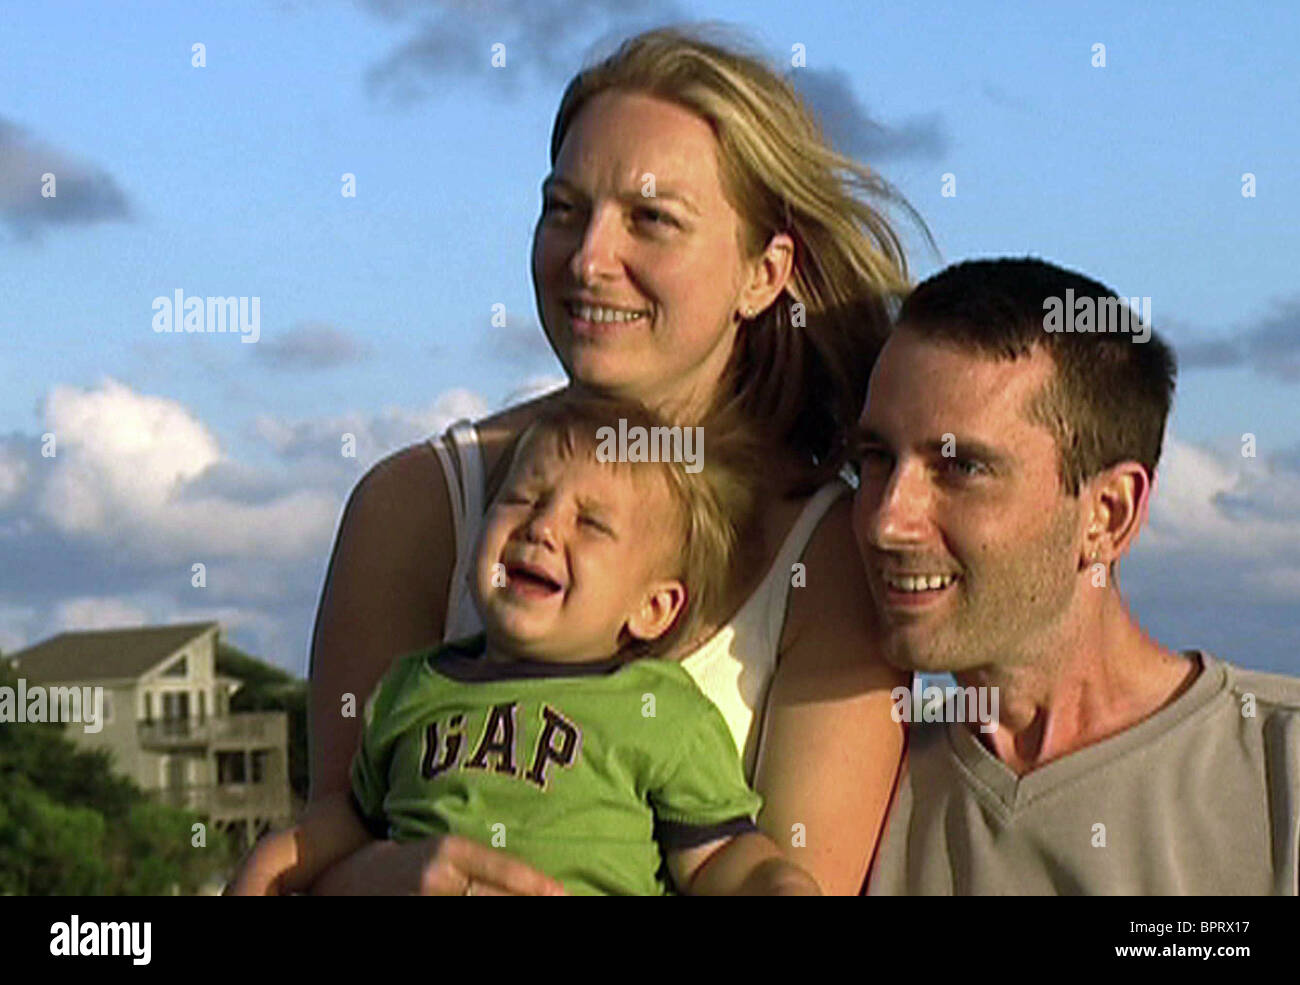 WIFE WENDY STACY, SON ALEX, STEPHEN HEYWOOD, SO MUCH SO FAST, 2006 Stock Photo